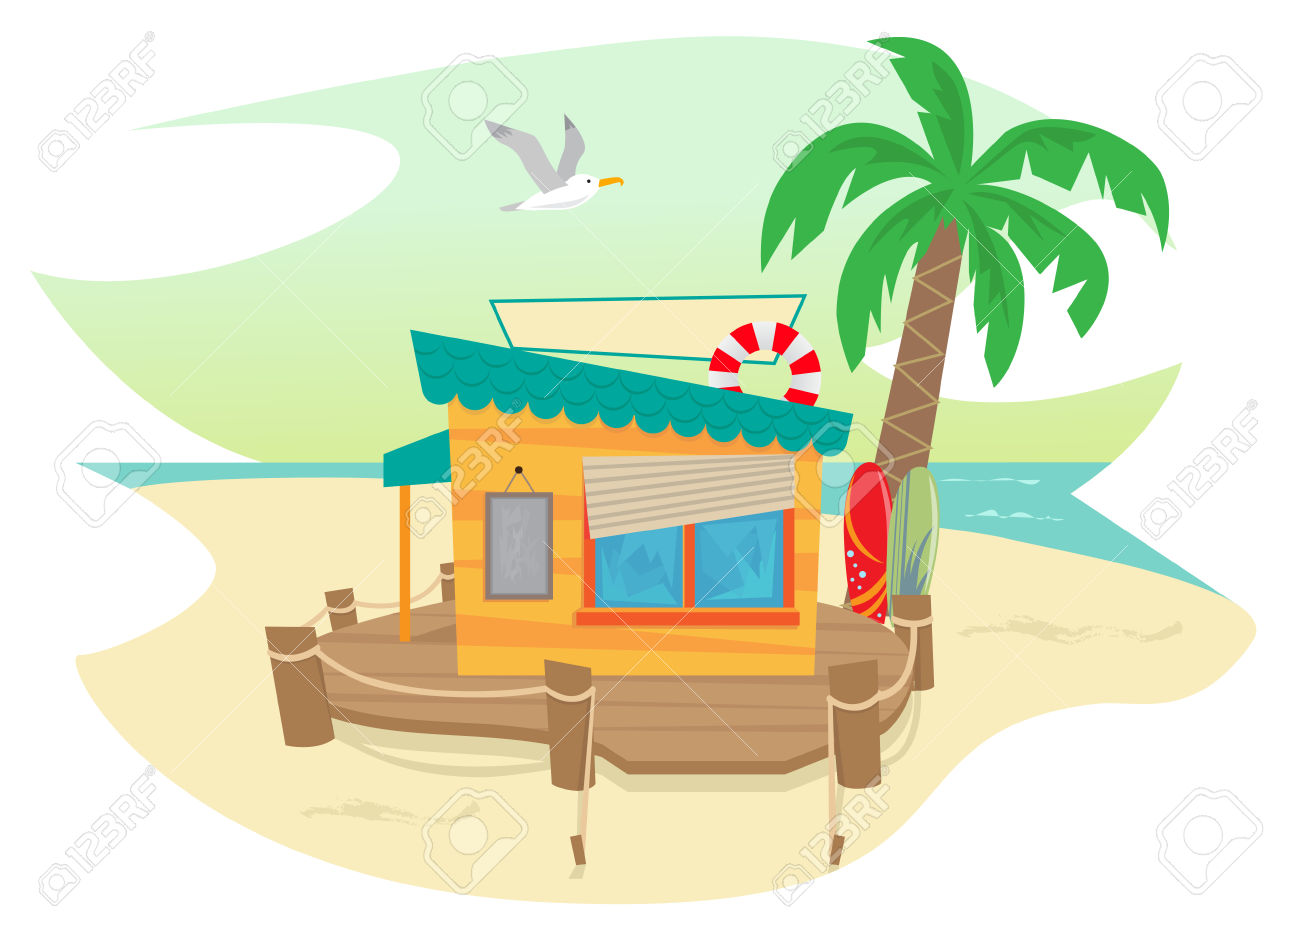 Palm tree surfboard clipart vector black and white download Beach Shack - Cute Beach Shack And A Palm Tree, Surfboards, Flying ... vector black and white download